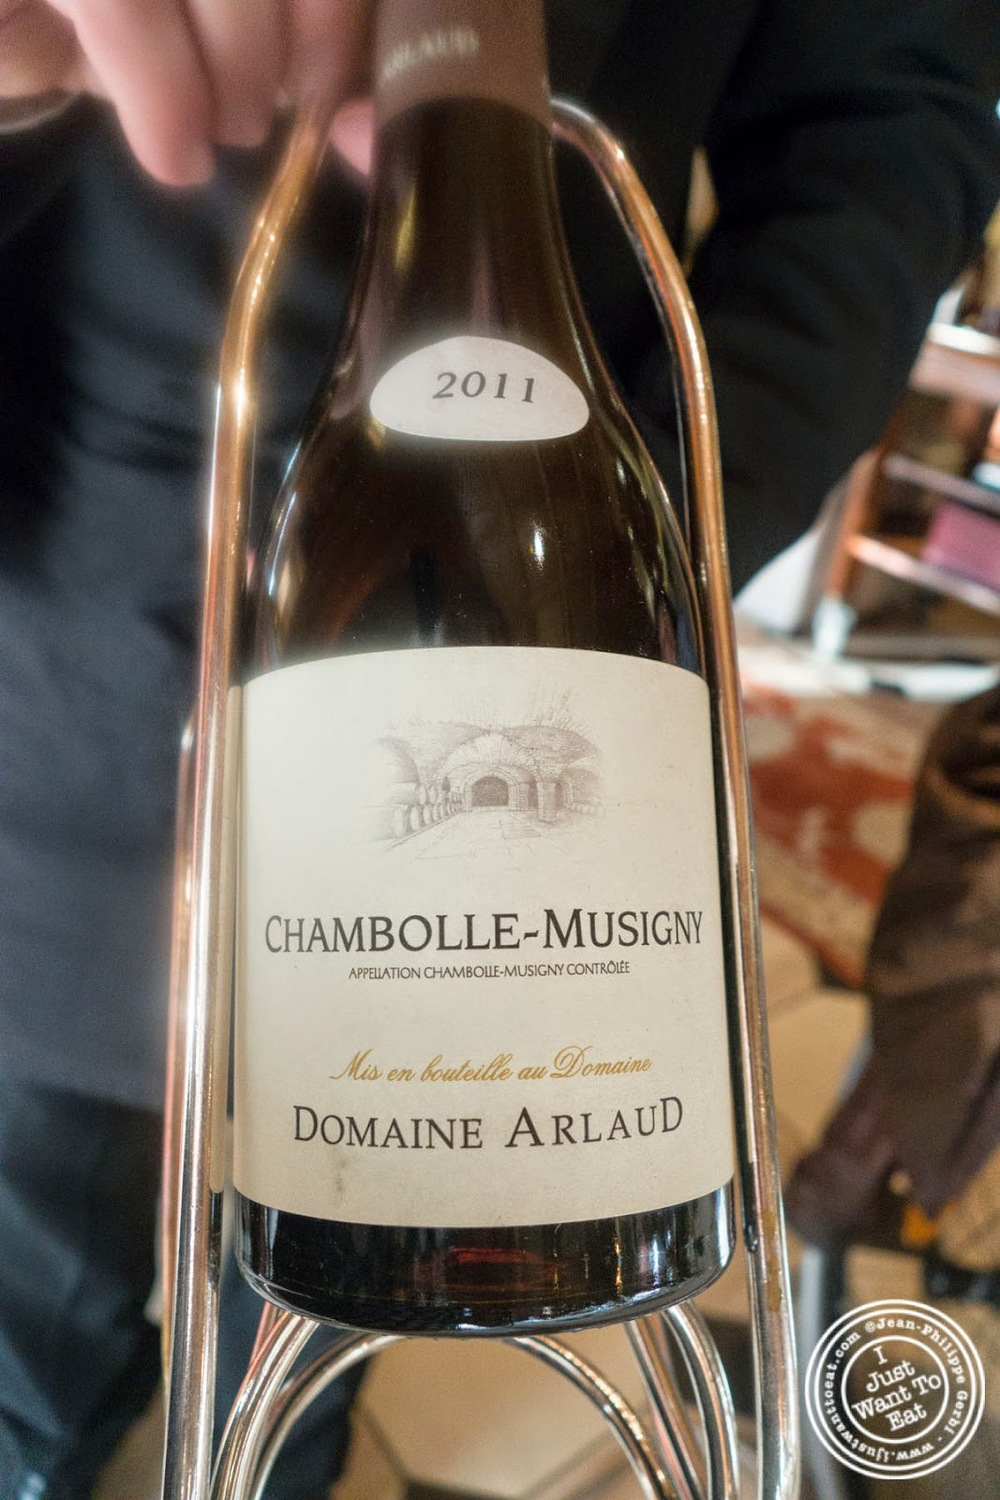 image of Chambolle-Musigny 2011 at Le Rempart in Tournus, France